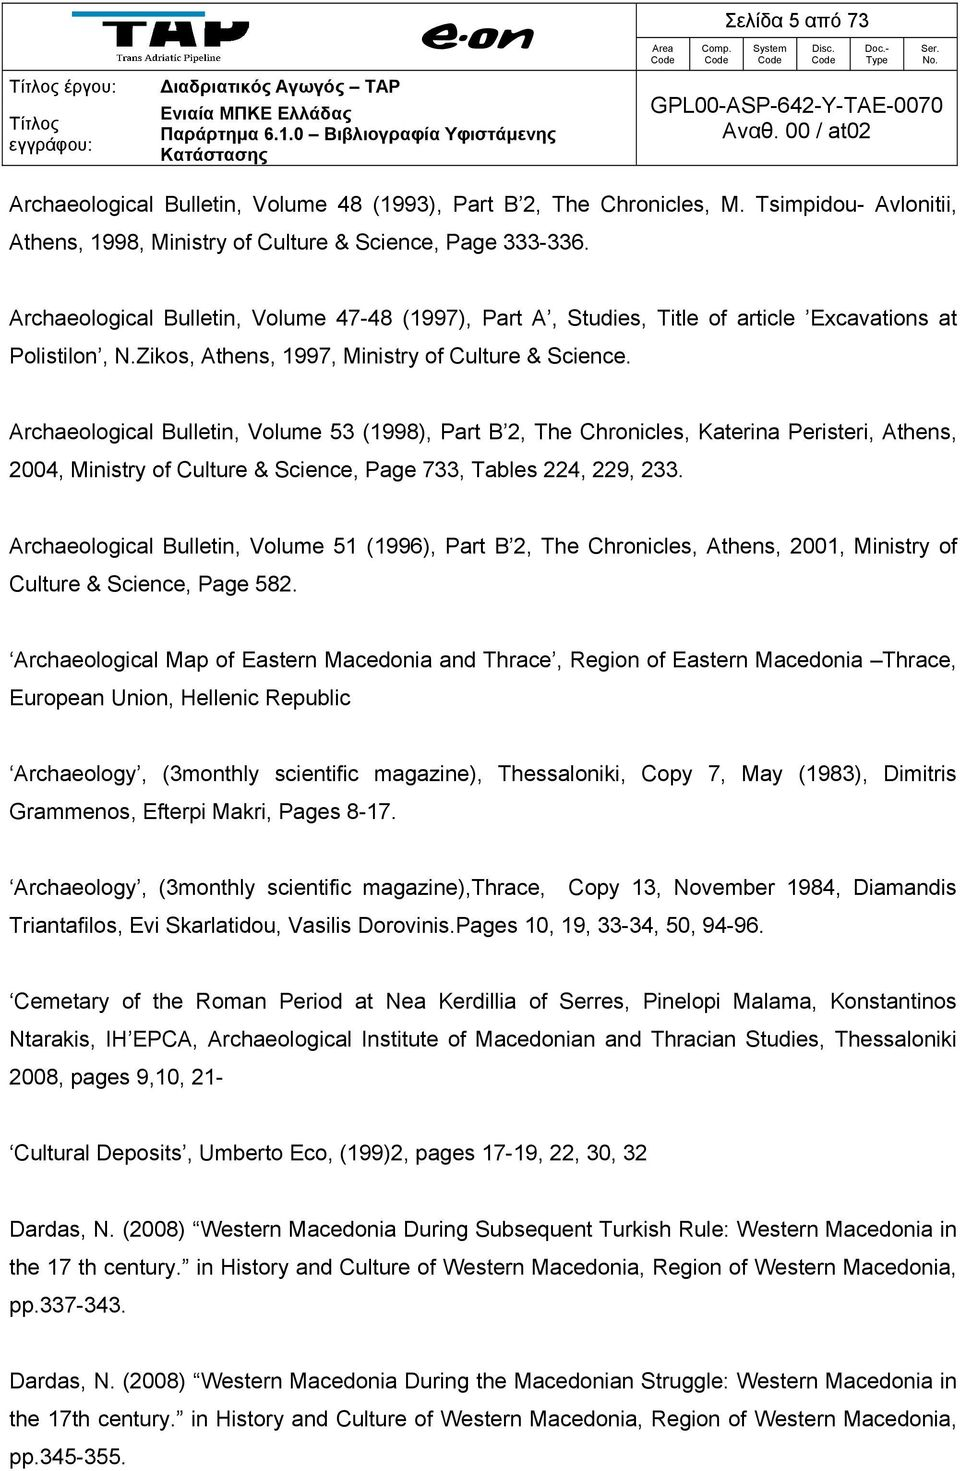 Archaeological Bulletin, Volume 53 (1998), Part B 2, The Chronicles, Katerina Peristeri, Athens, 2004, Ministry of Culture & Science, Page 733, Tables 224, 229, 233.